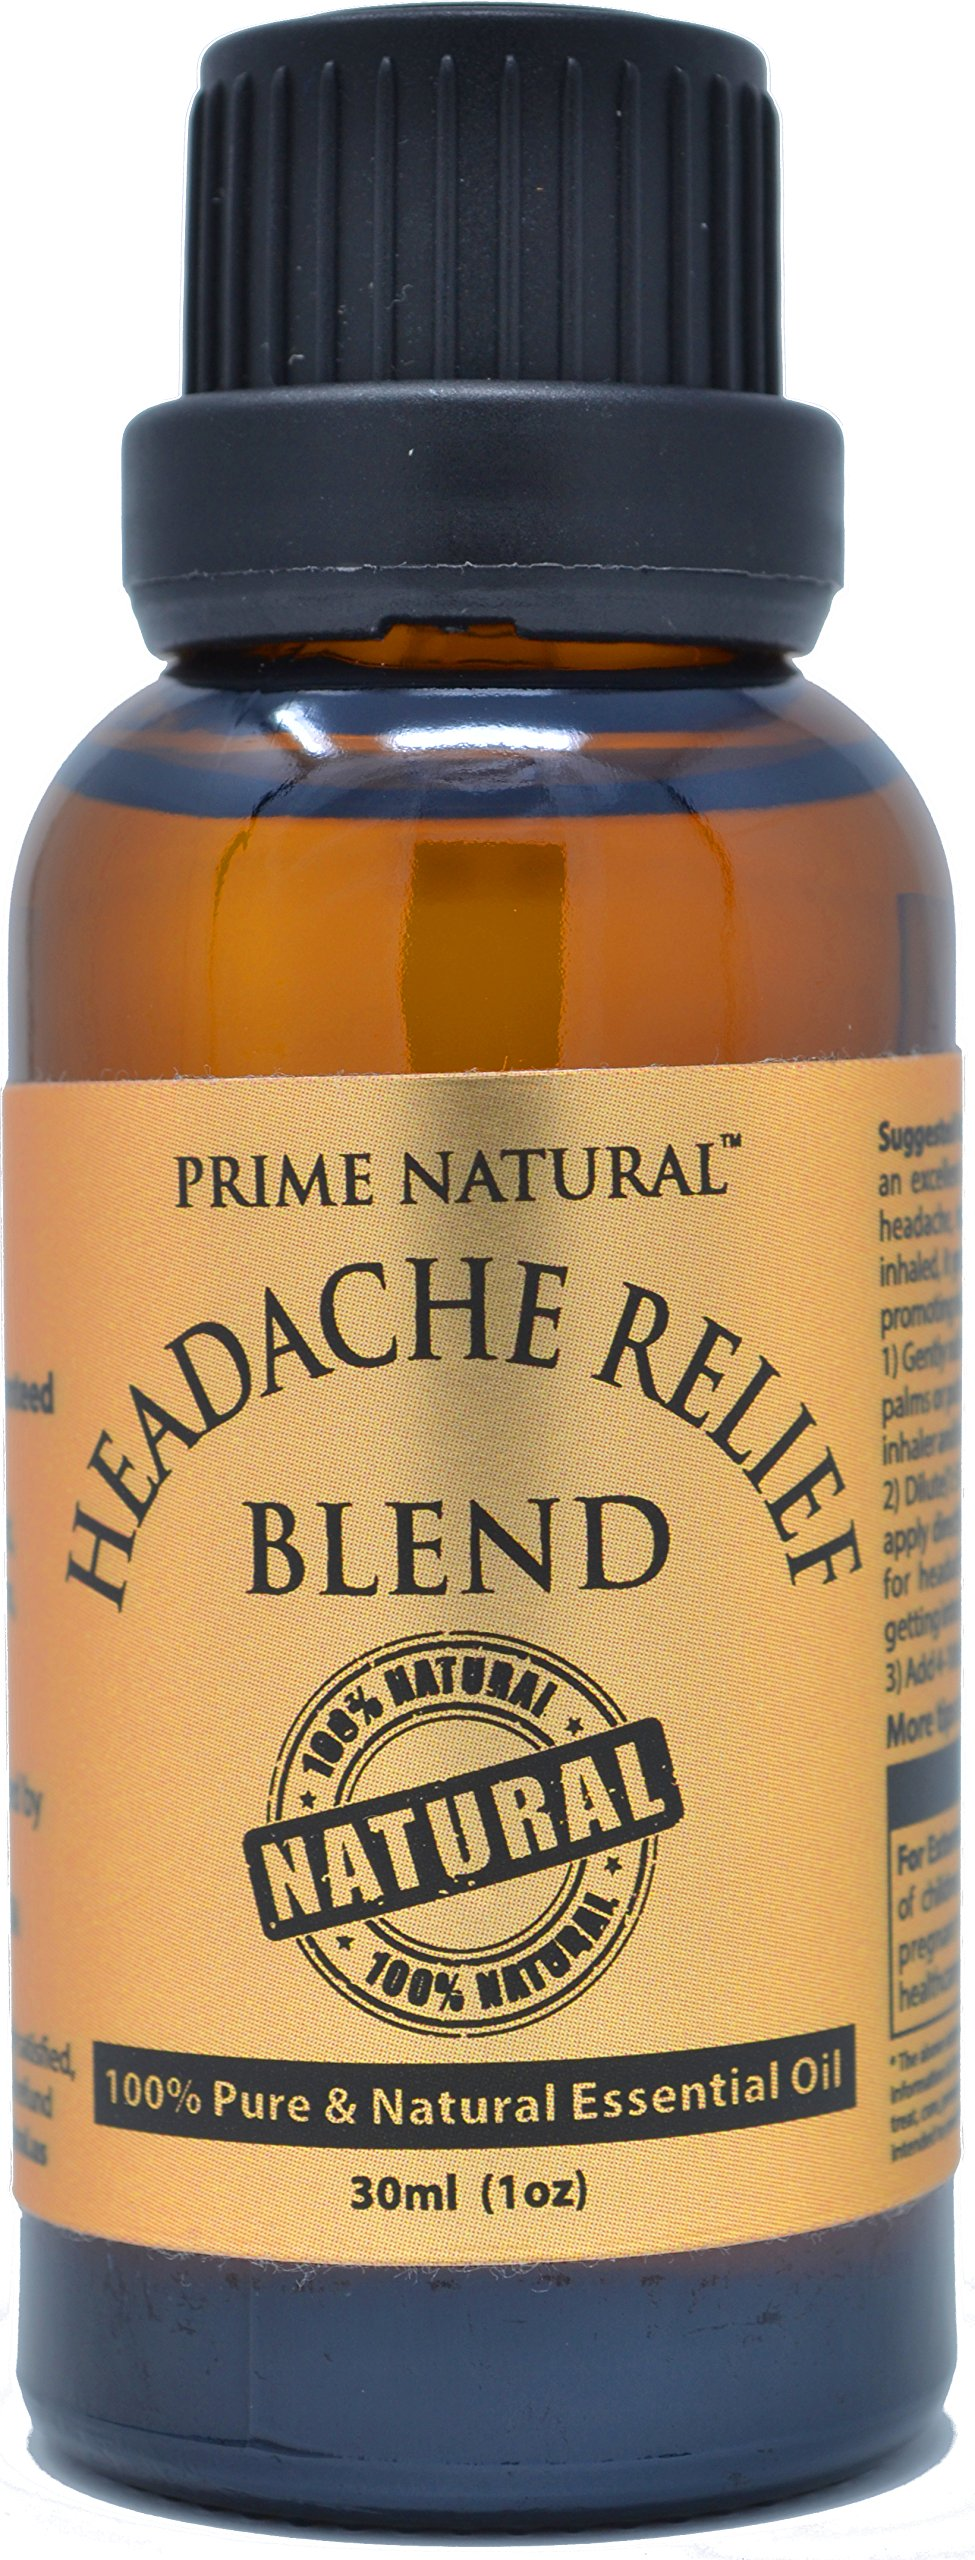 Headache Relief Essential Oil Blend 30ml/1oz - 100% Natural Pure Undiluted Therapeutic Grade for Aromatherapy, Scents & Diffuser - Migraine, Tension, Relaxation, Stress Relief, Calming